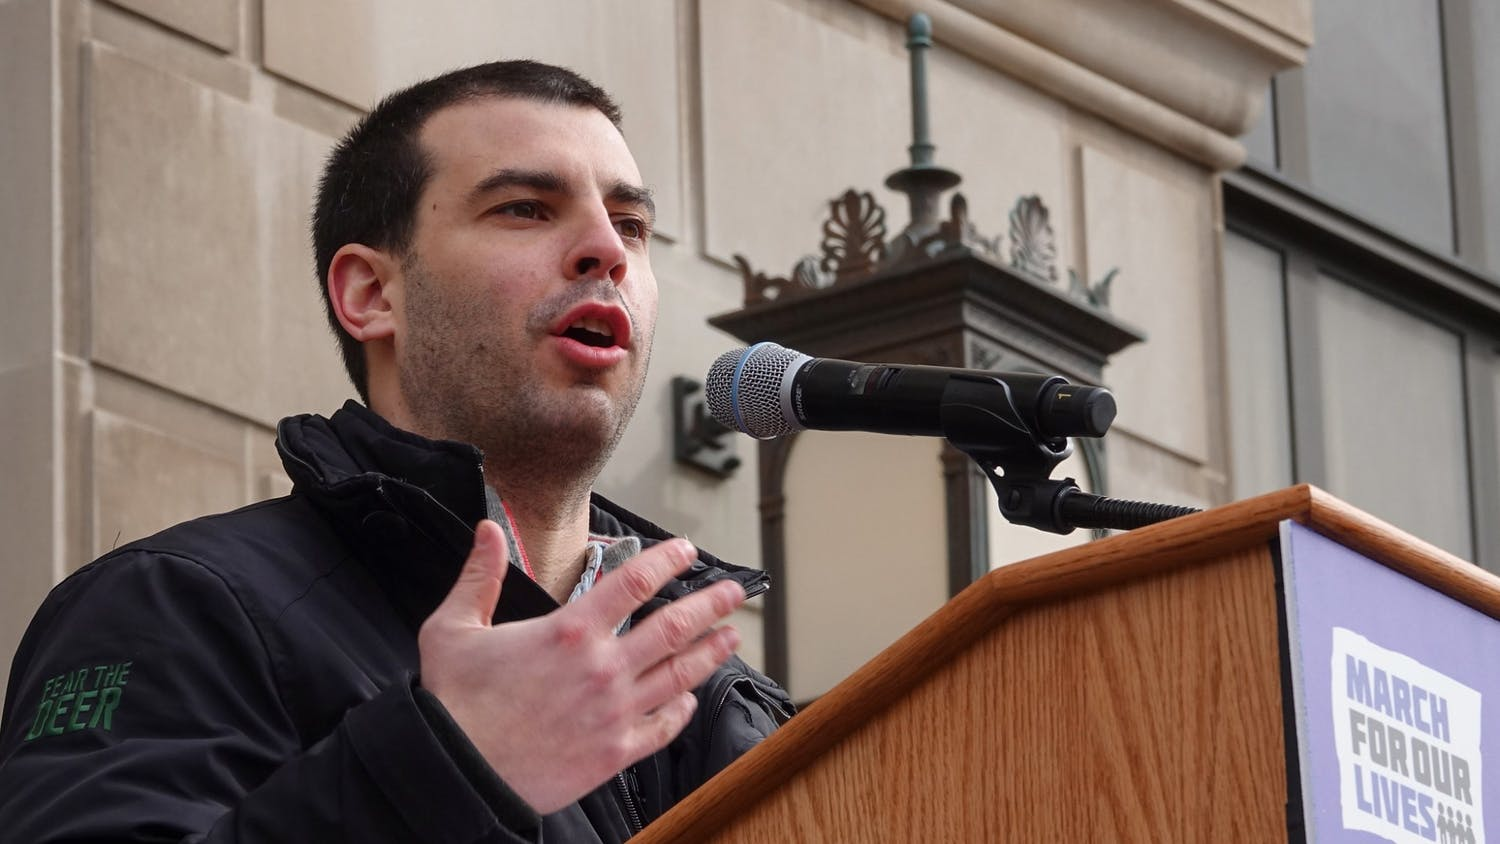 Alex Larry speaks at a rally